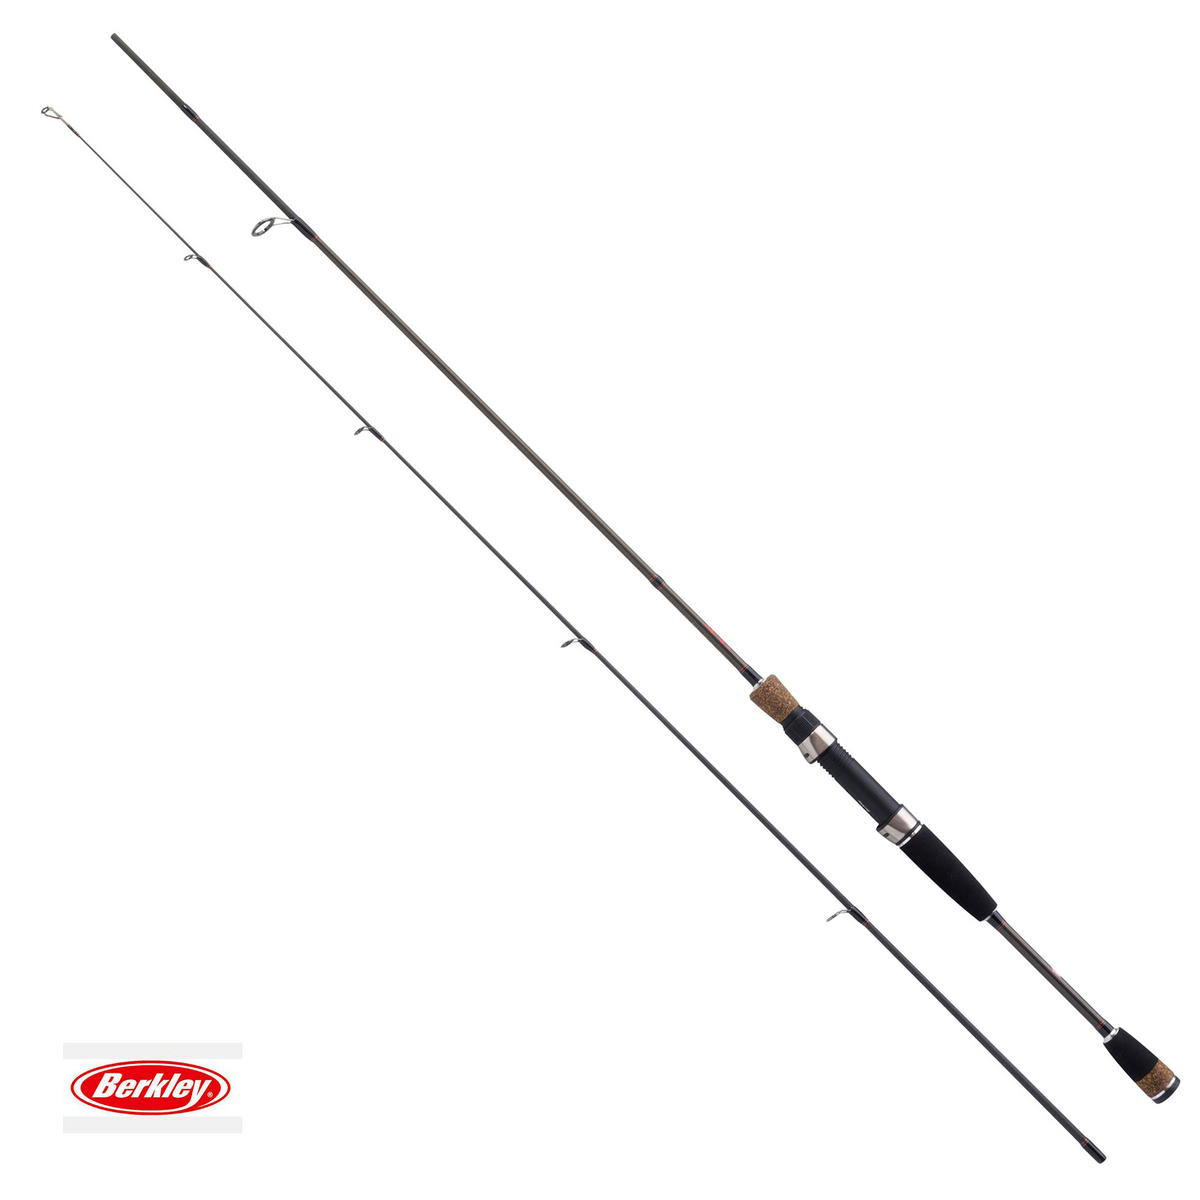 New Berkley FireFlex Spinning Rod 7ft - 8ft 2pc - All Models Available